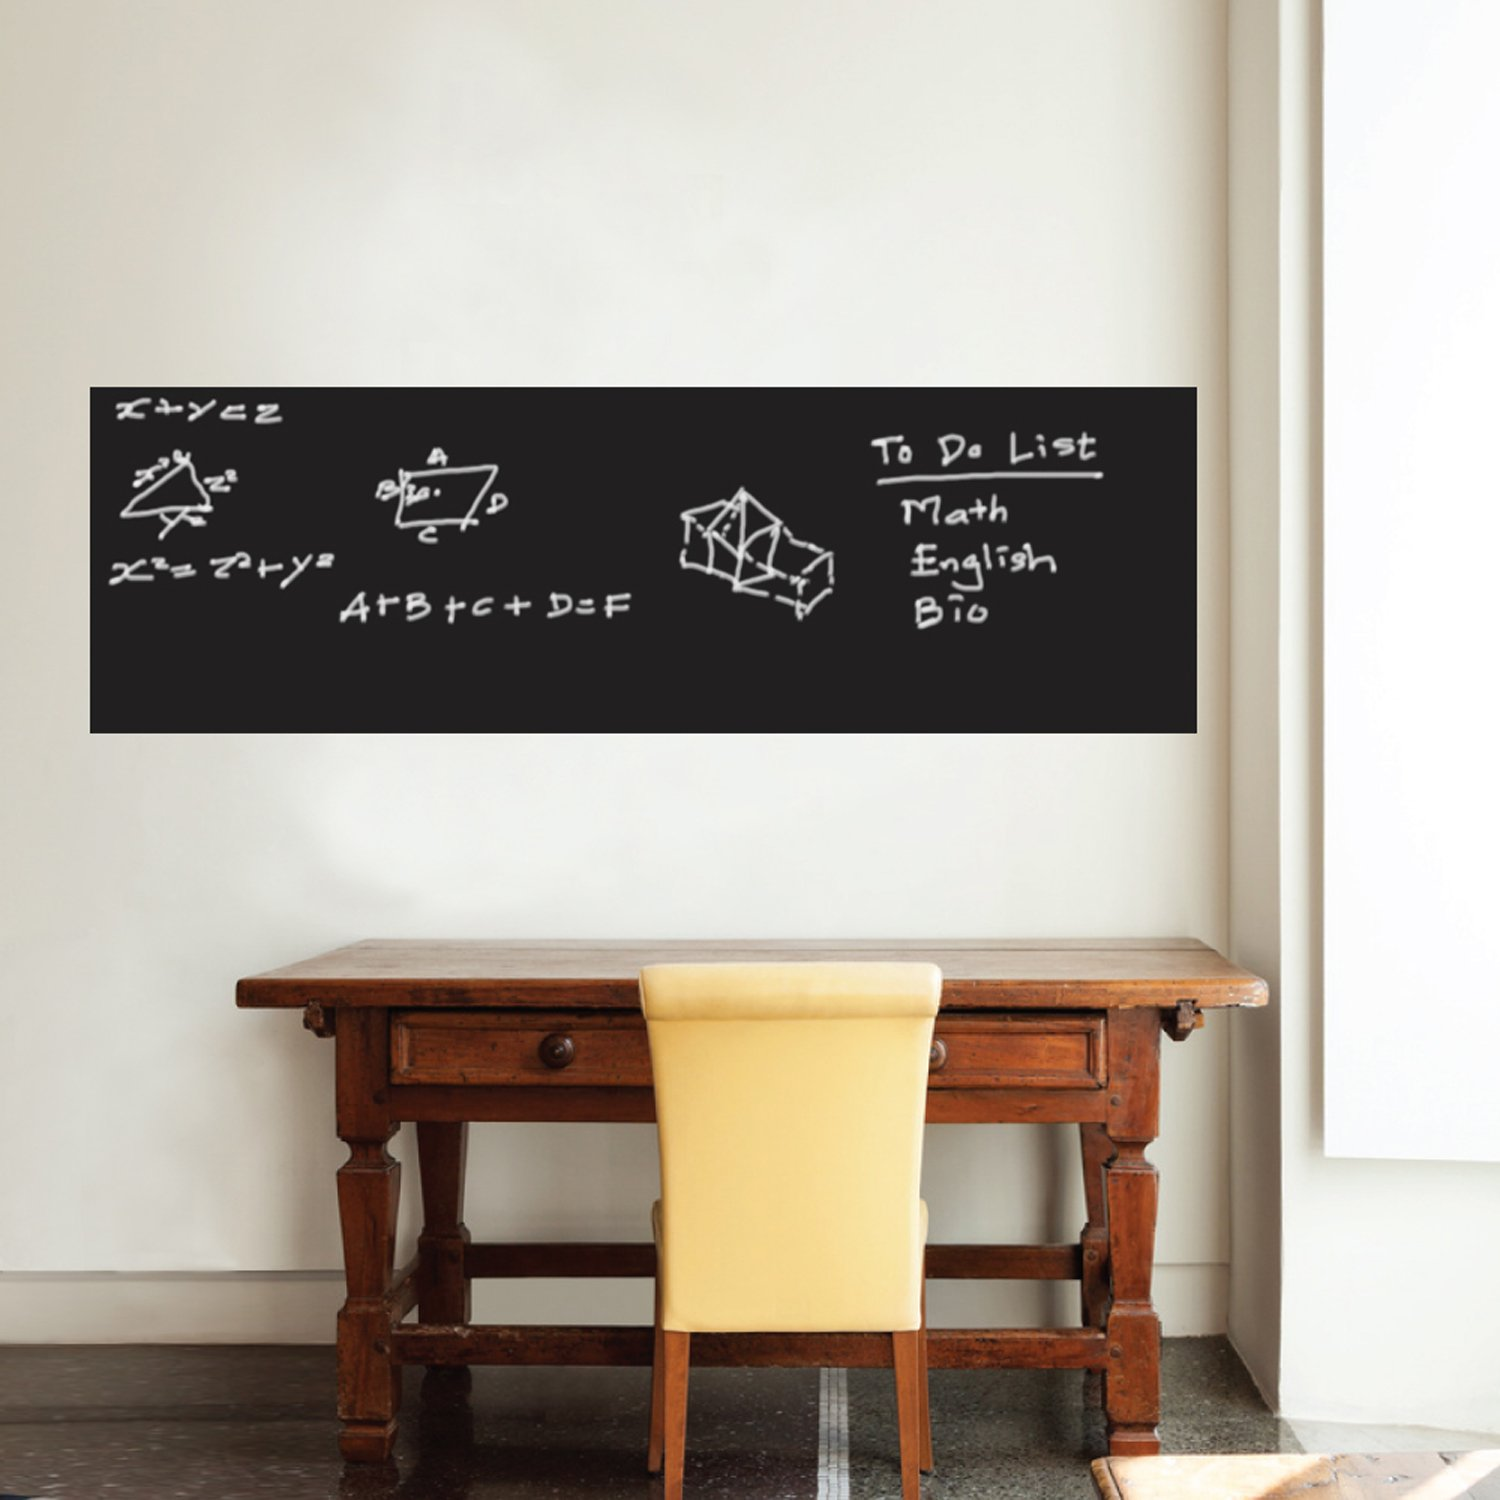 walplus 200x45 cm wall stickers uk blackboard removable self walplus 200x45 cm wall stickers uk blackboard removable self adhesive mural art decals vinyl home decoration diy living bedroom office decor wallpaper kids